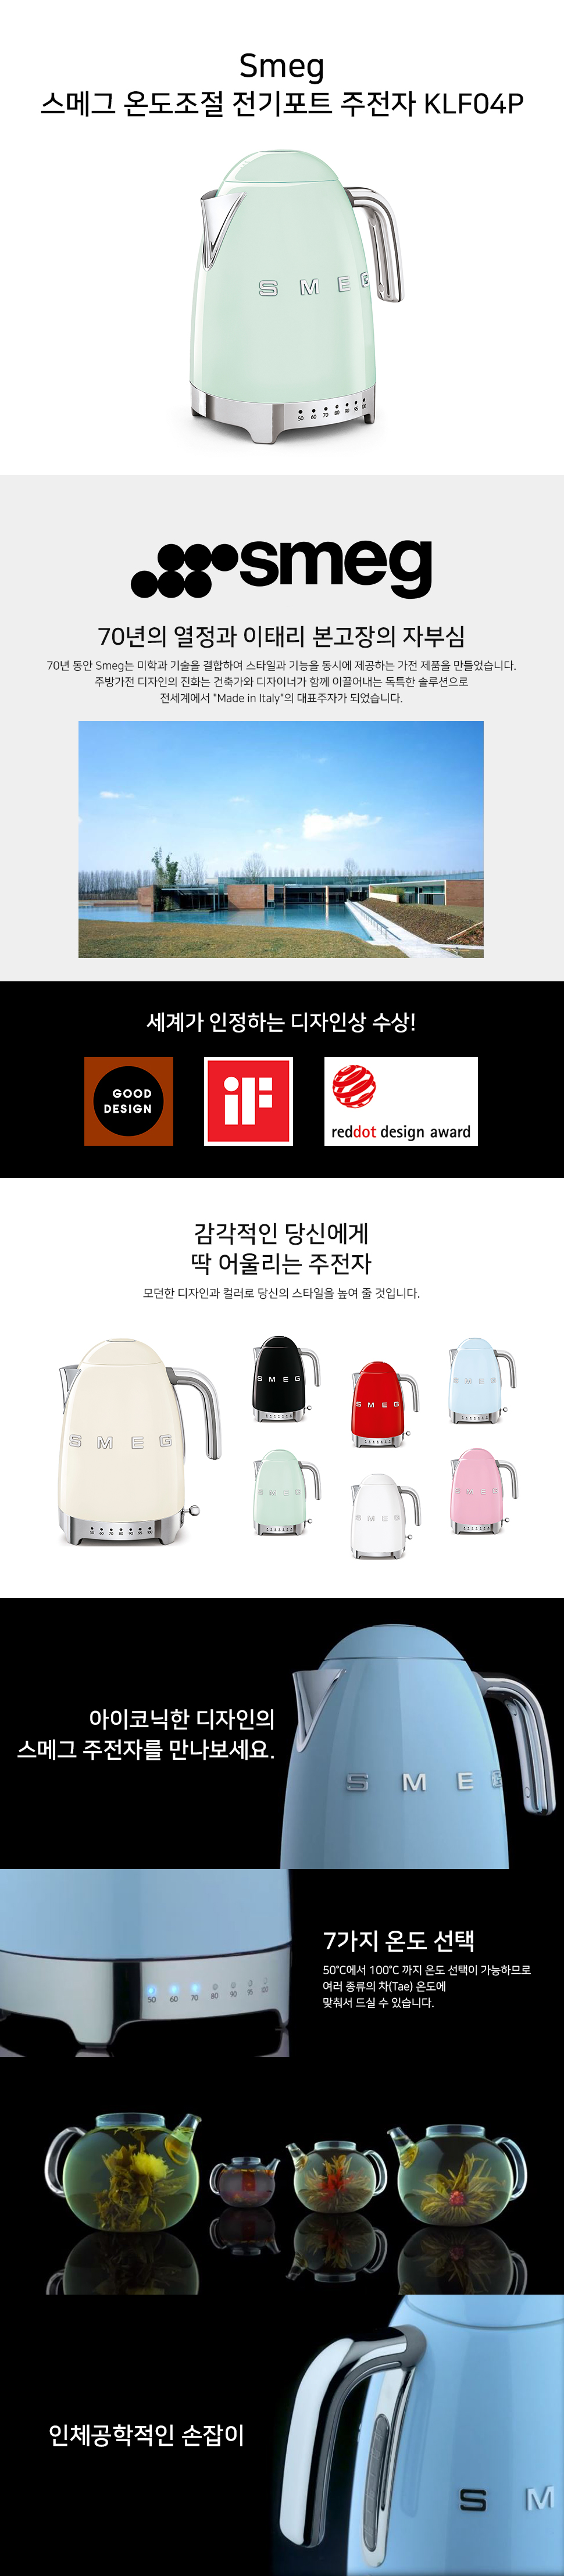 Smeg_Variable_Electric_Kettle_KLF04_01.jpg